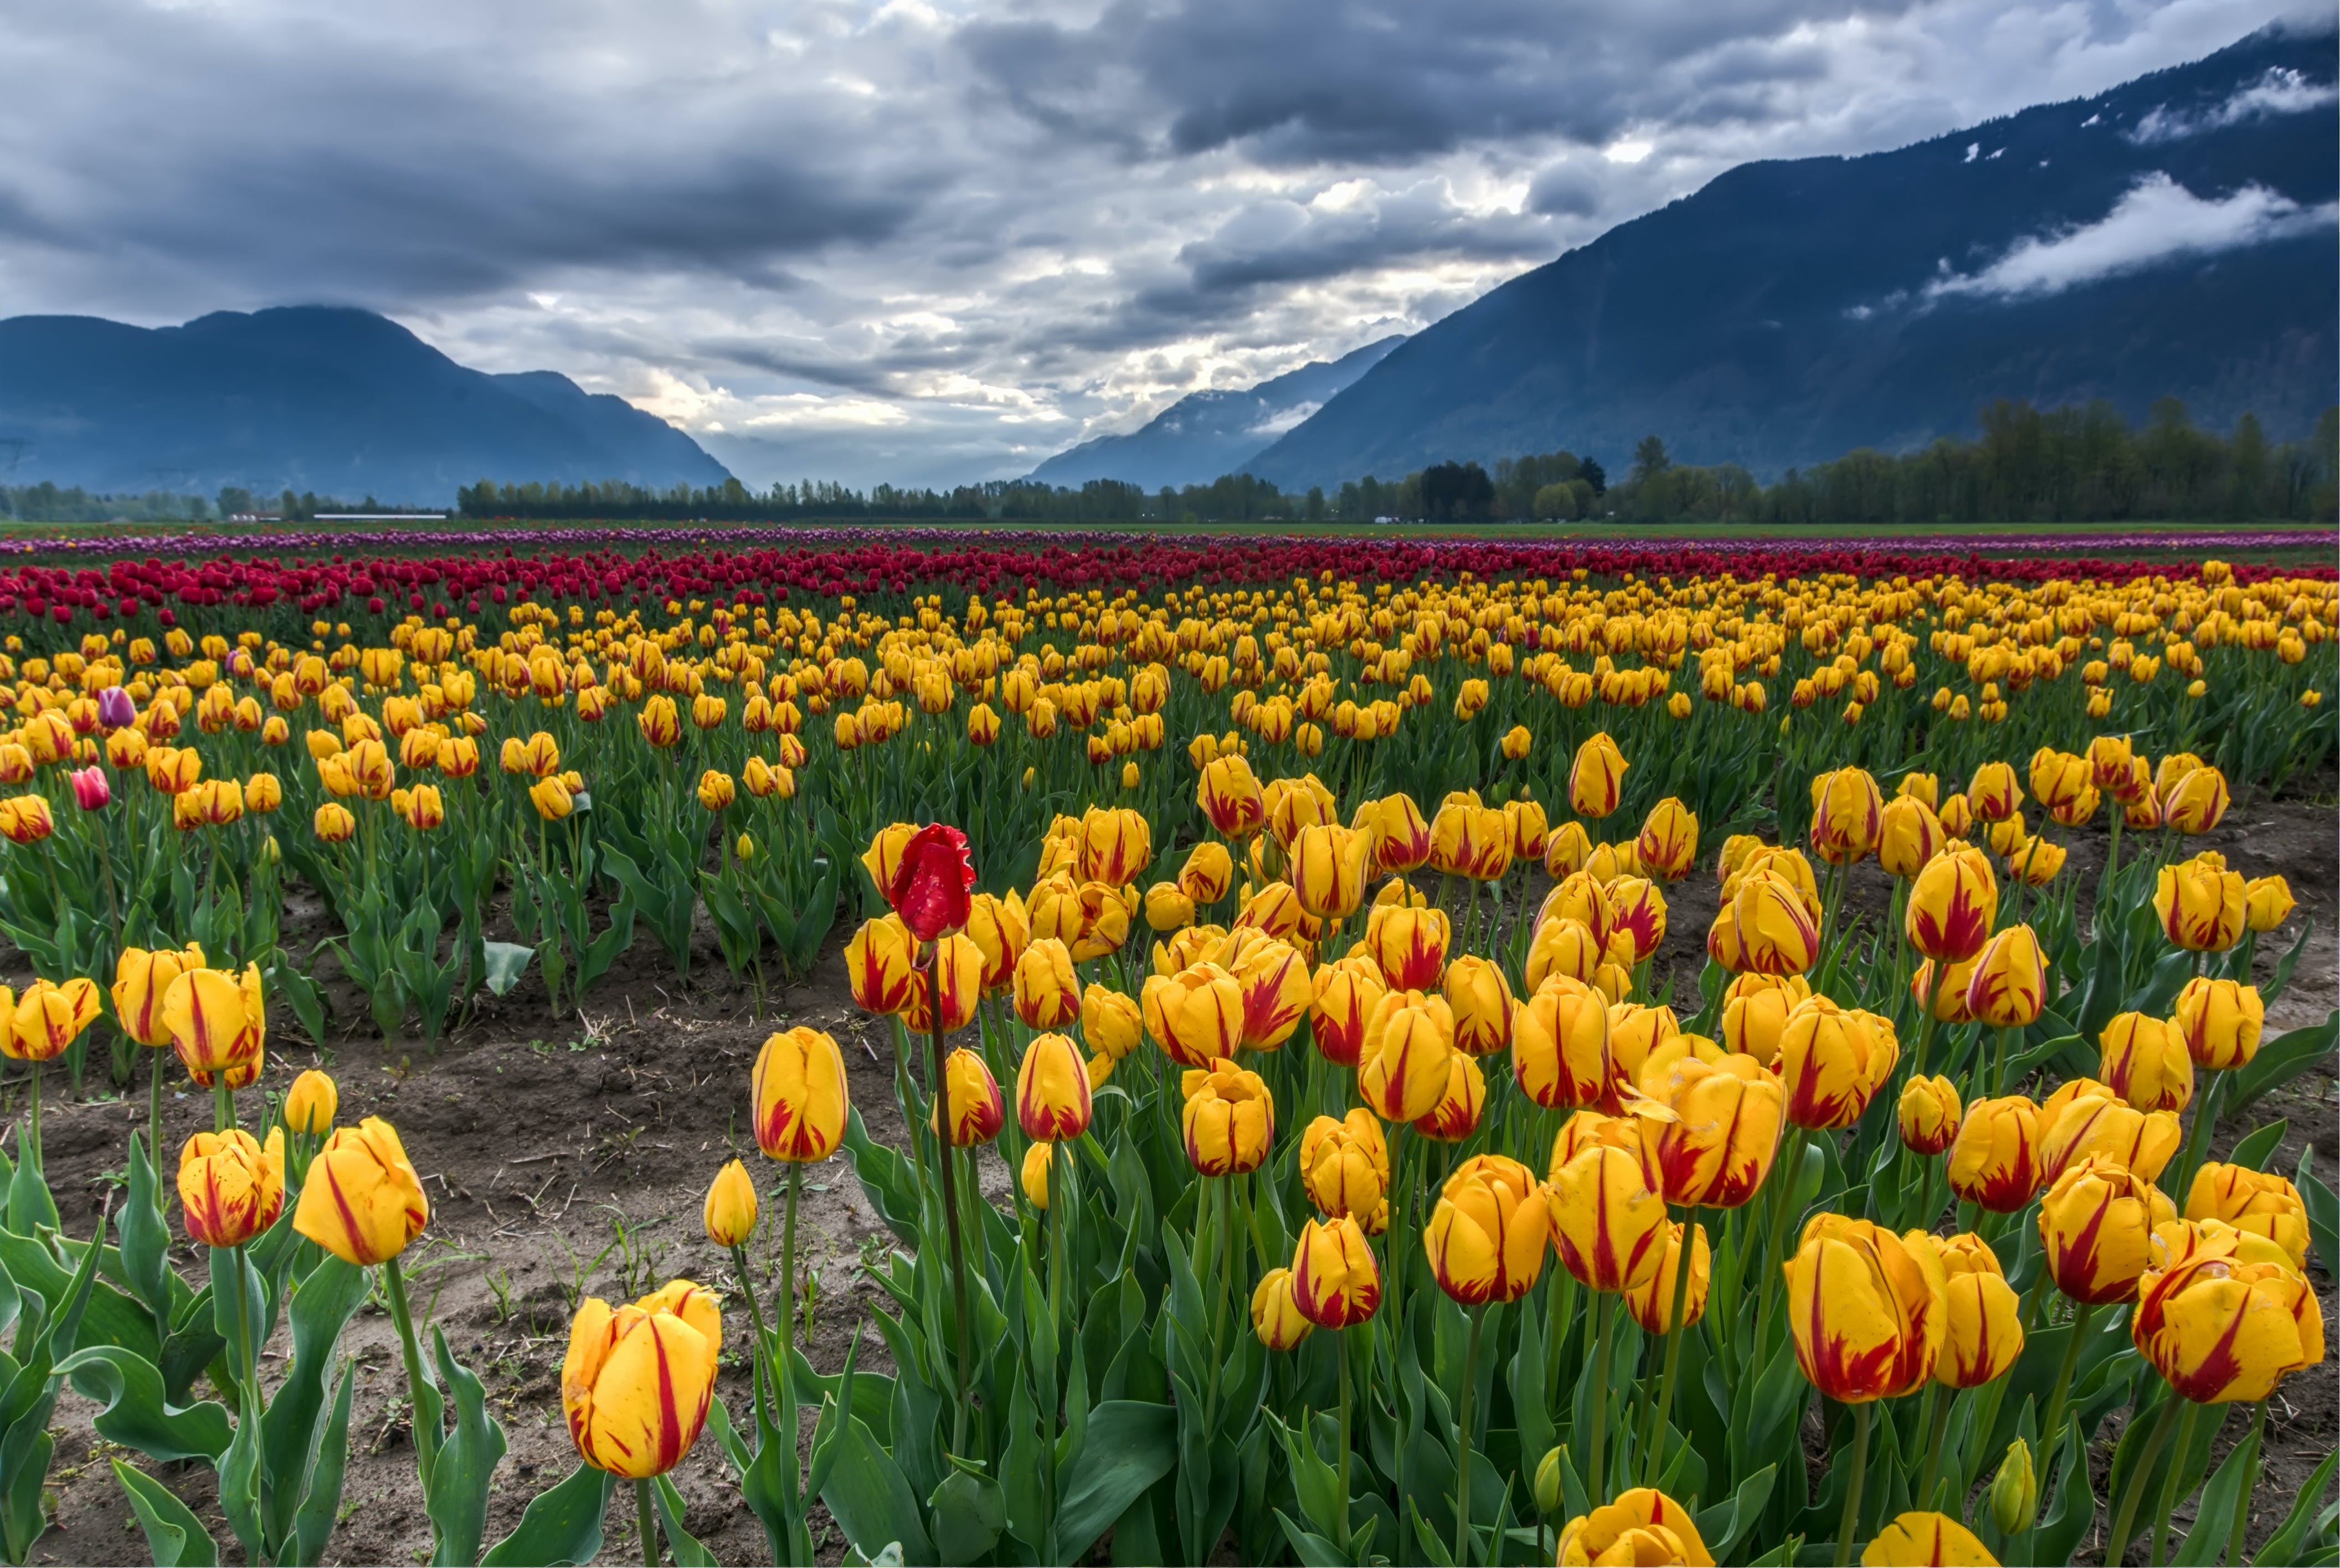 Photo of Field of Yellow and Red Tulips